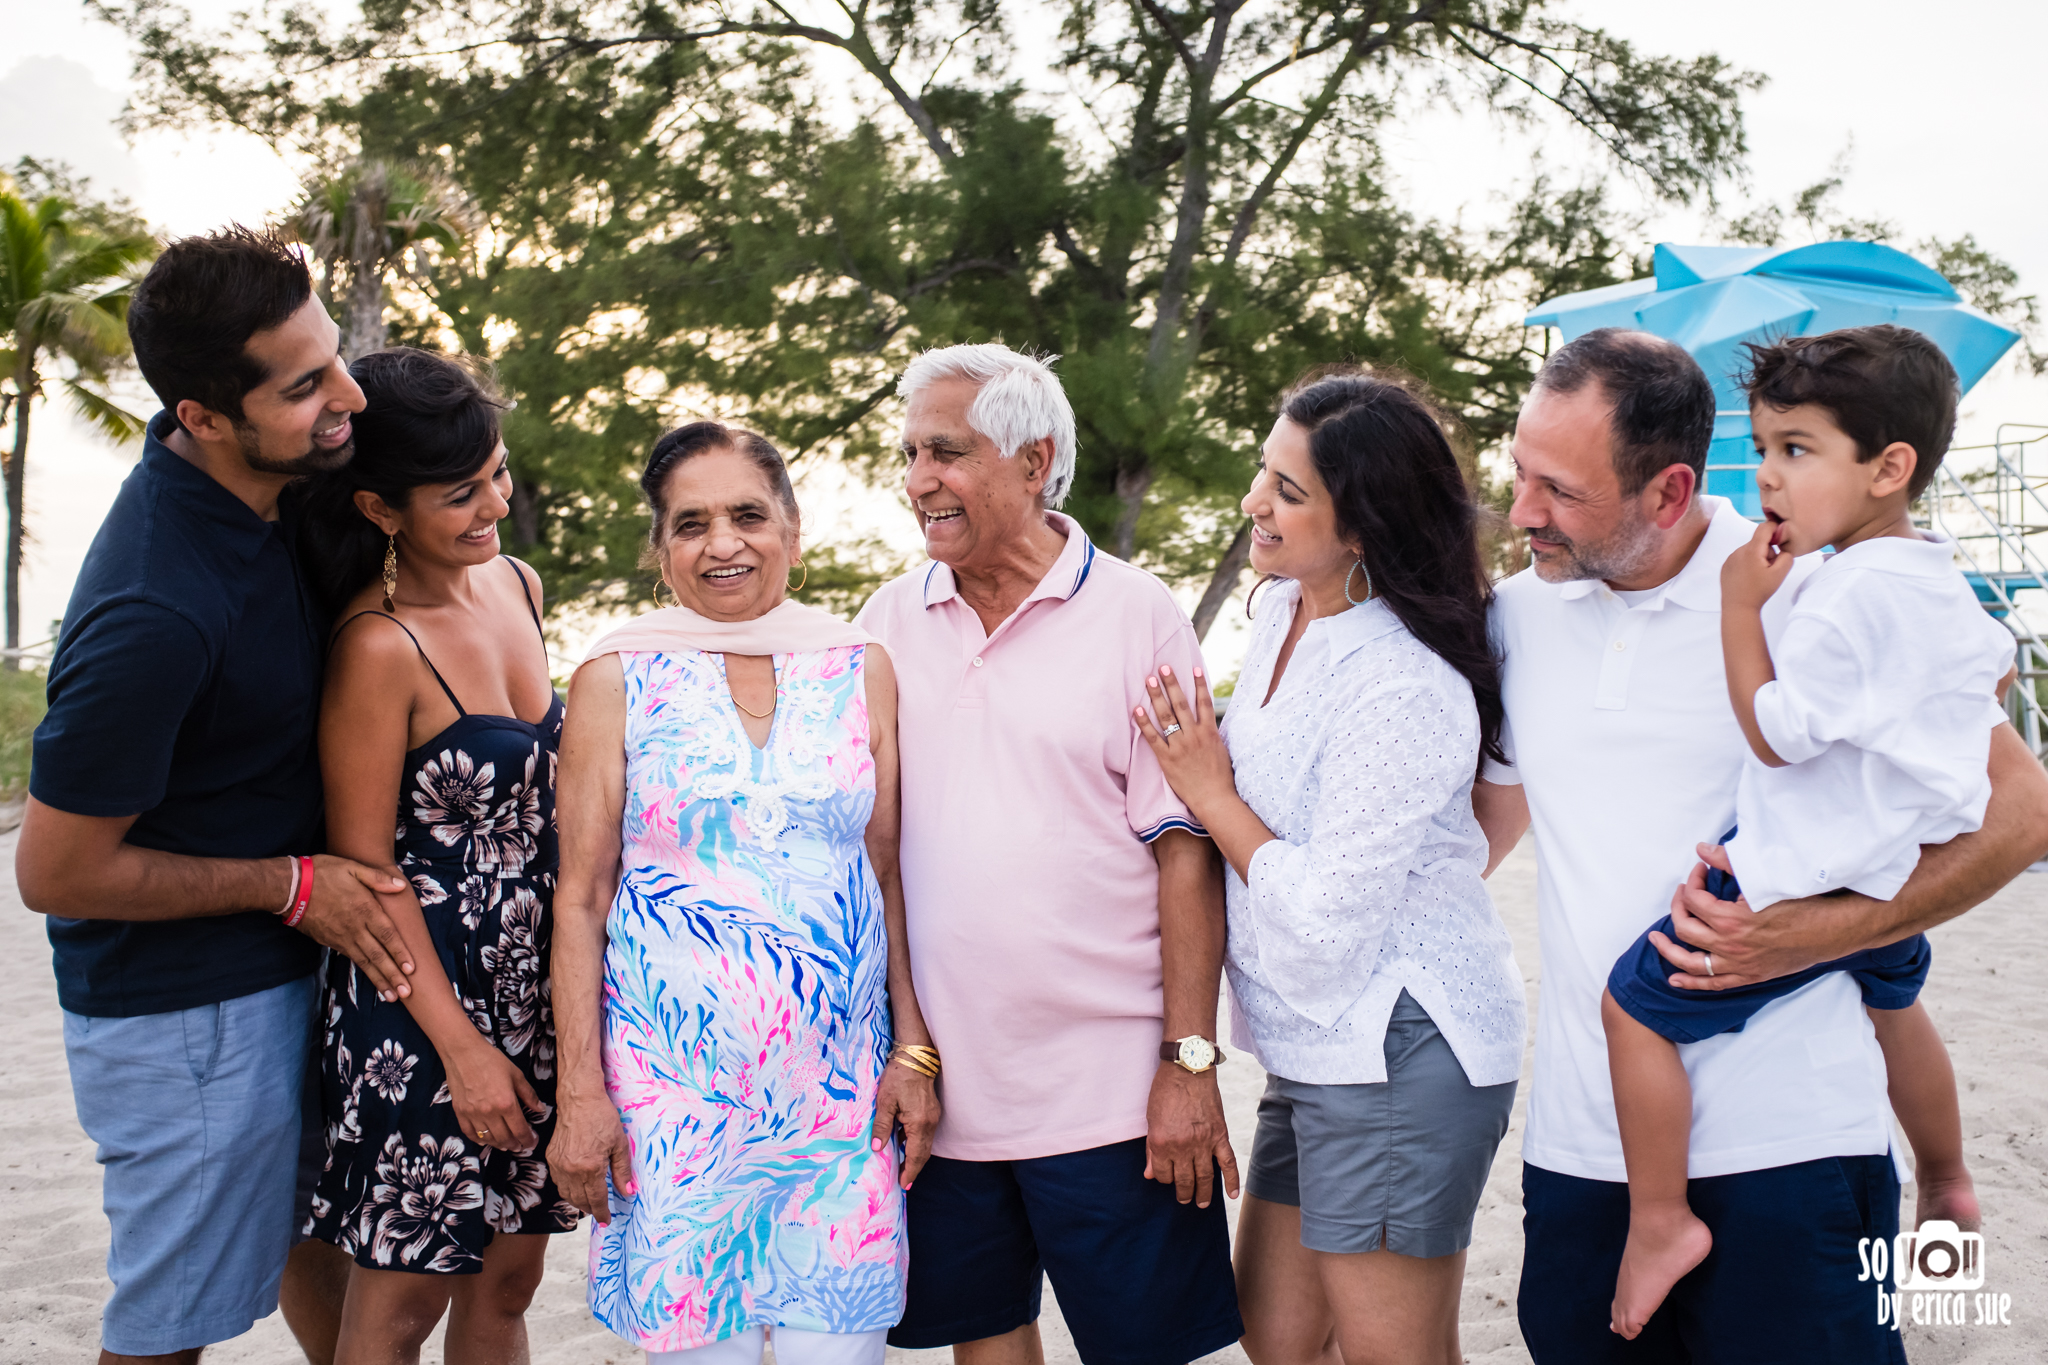 so-you-by-erica-sue-dania-beach-lifestyle-family-photographer-session-fuji-x100f-0596.JPG